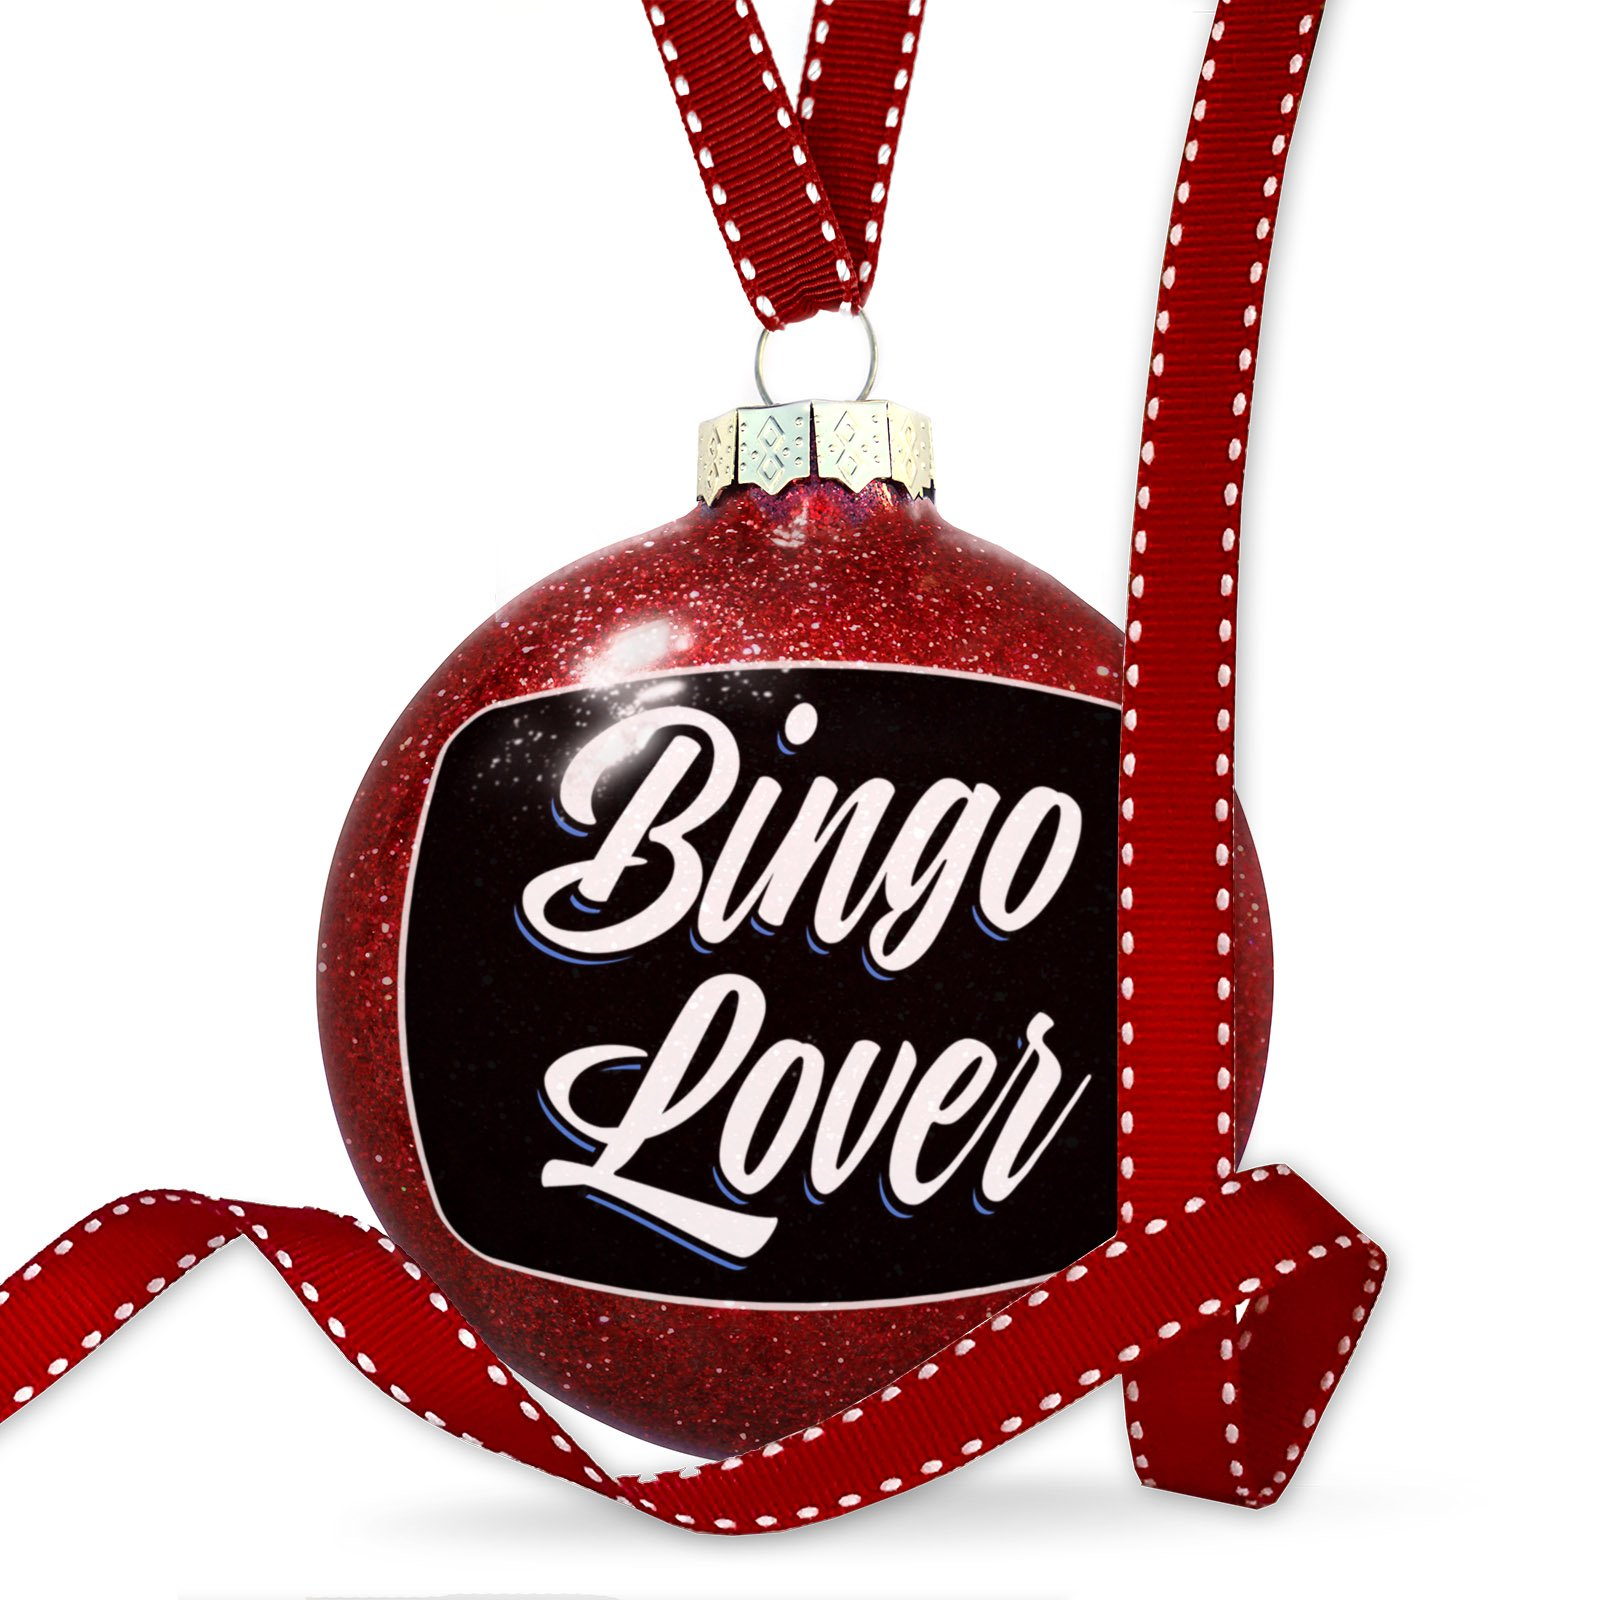 Christmas Decoration Classic design Bingo Lover Ornament by NEONBLOND